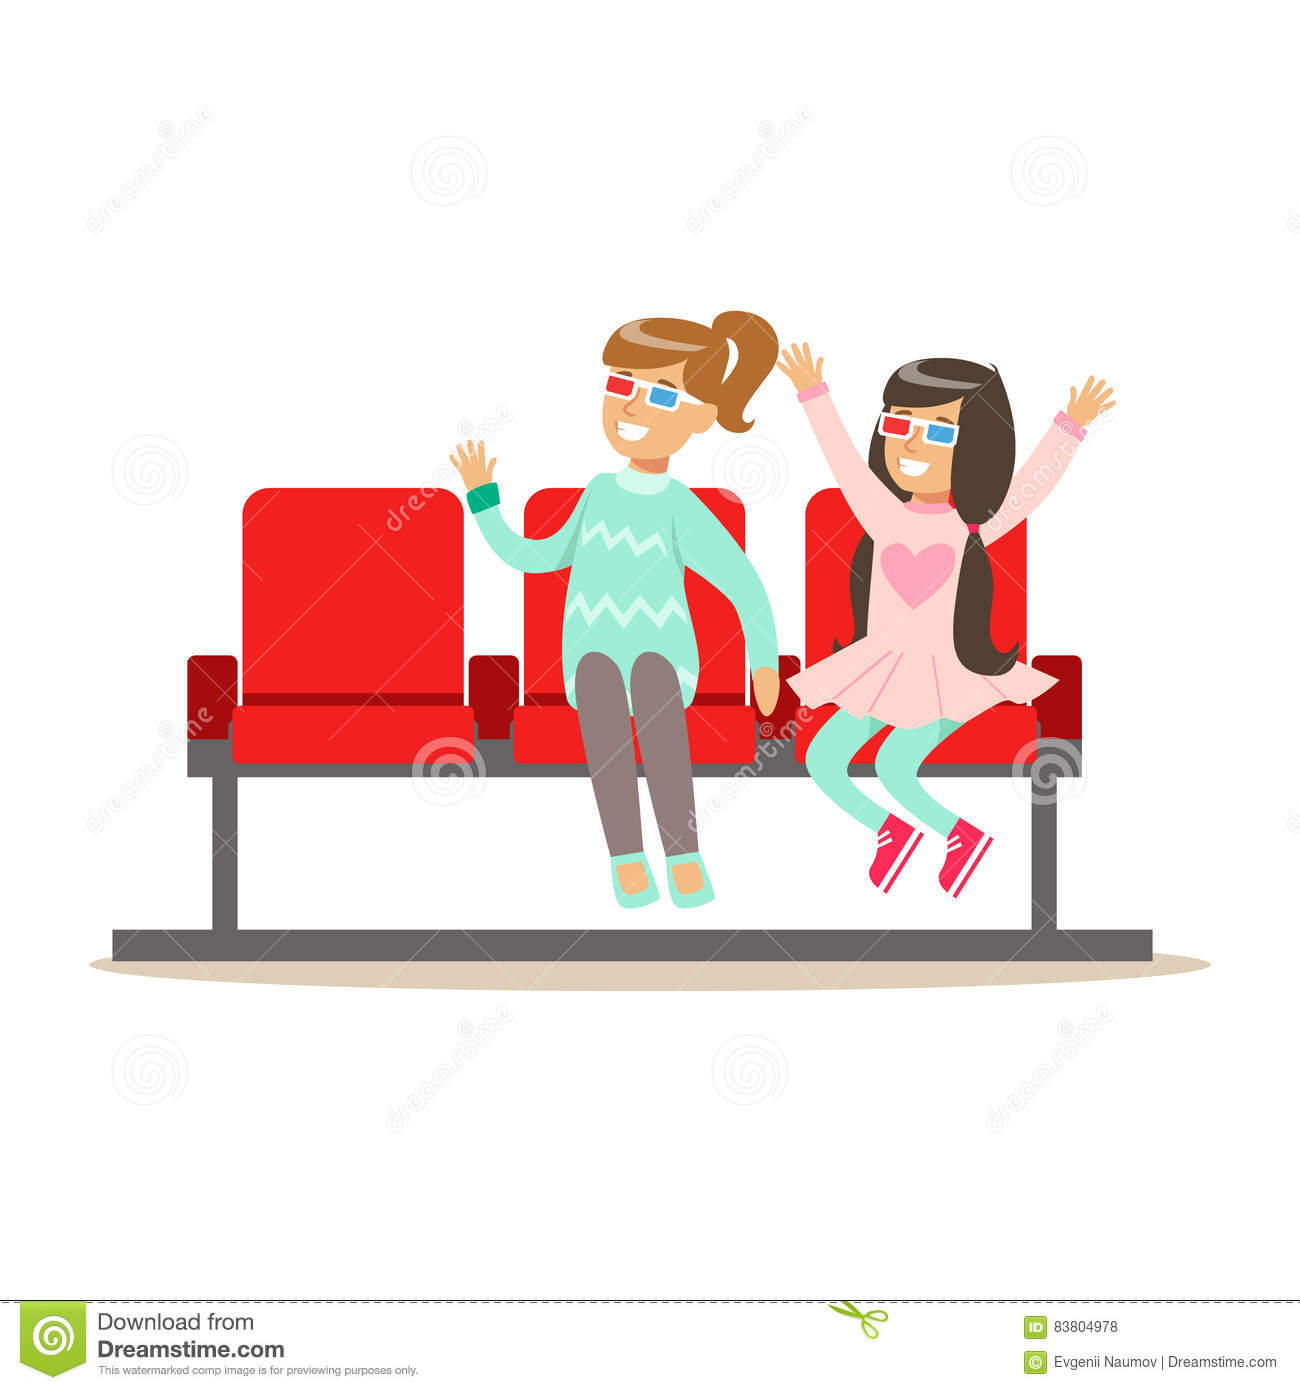 Two Girls Waiting Taking Seats In Cinema Room Part Of Happy People In Movie Theatre Series Stock Vector Illustration Of Cartoon Indoors 83804978